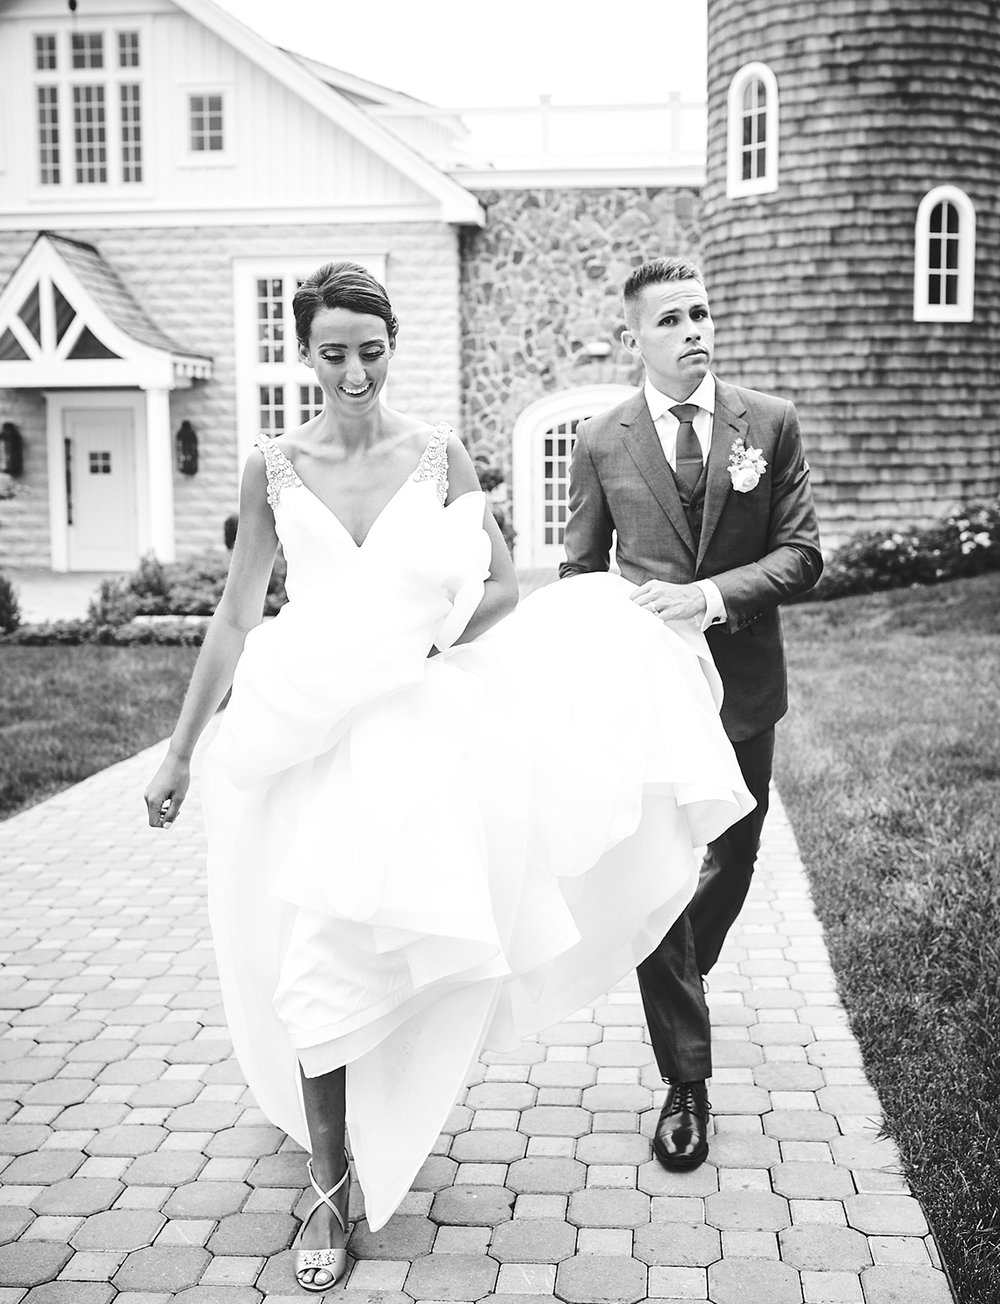 180819_TheRylandInnWeddingPhotography_TheRylandInnWeddingPhotographer_By_BrJohnsonWeddings_0110.jpg